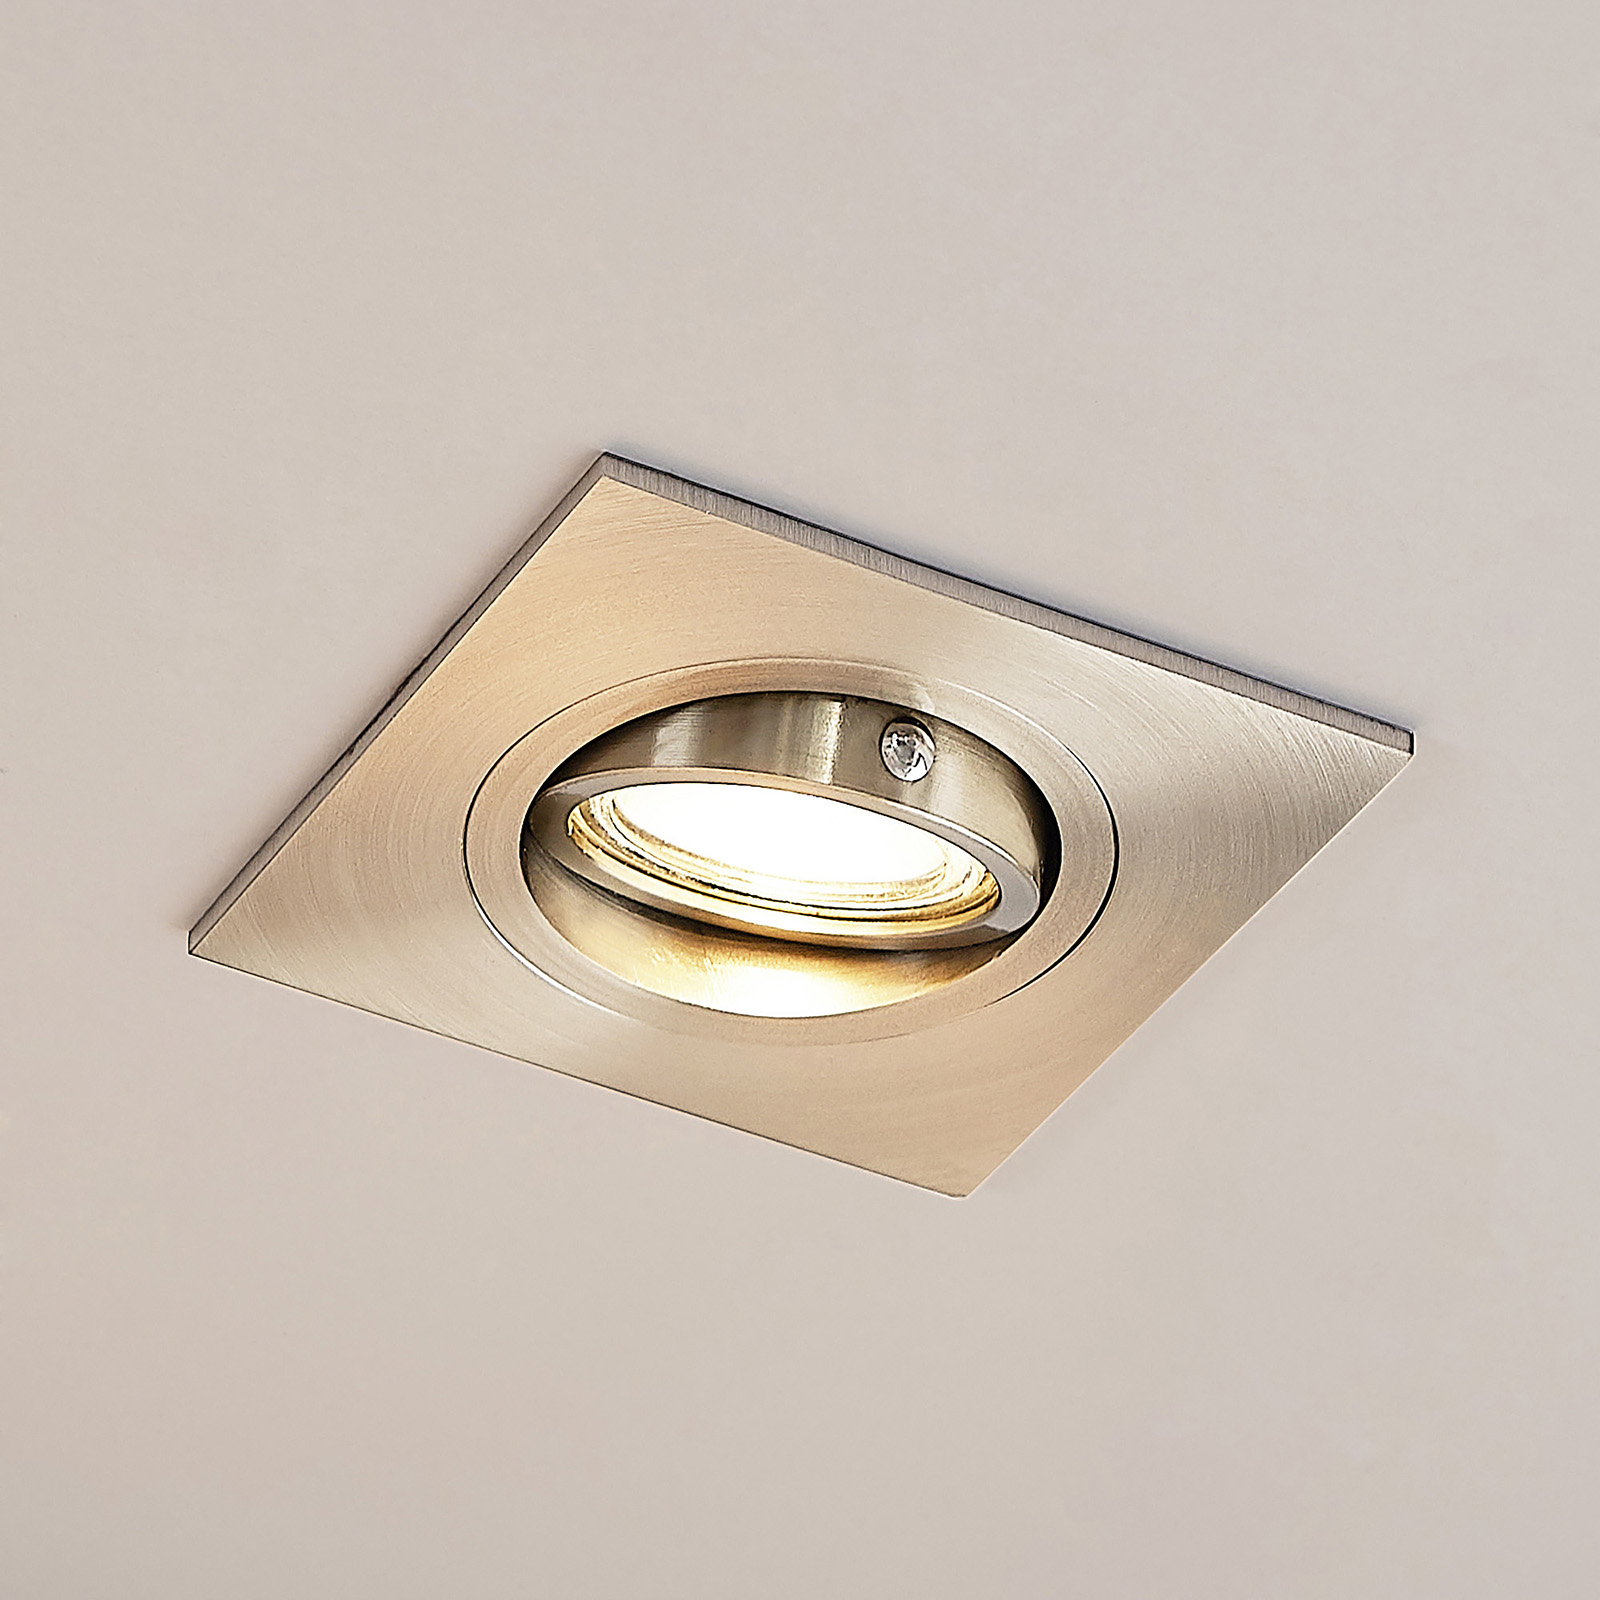 Lucande Arilena recessed light, IP23, angular_9969154_1